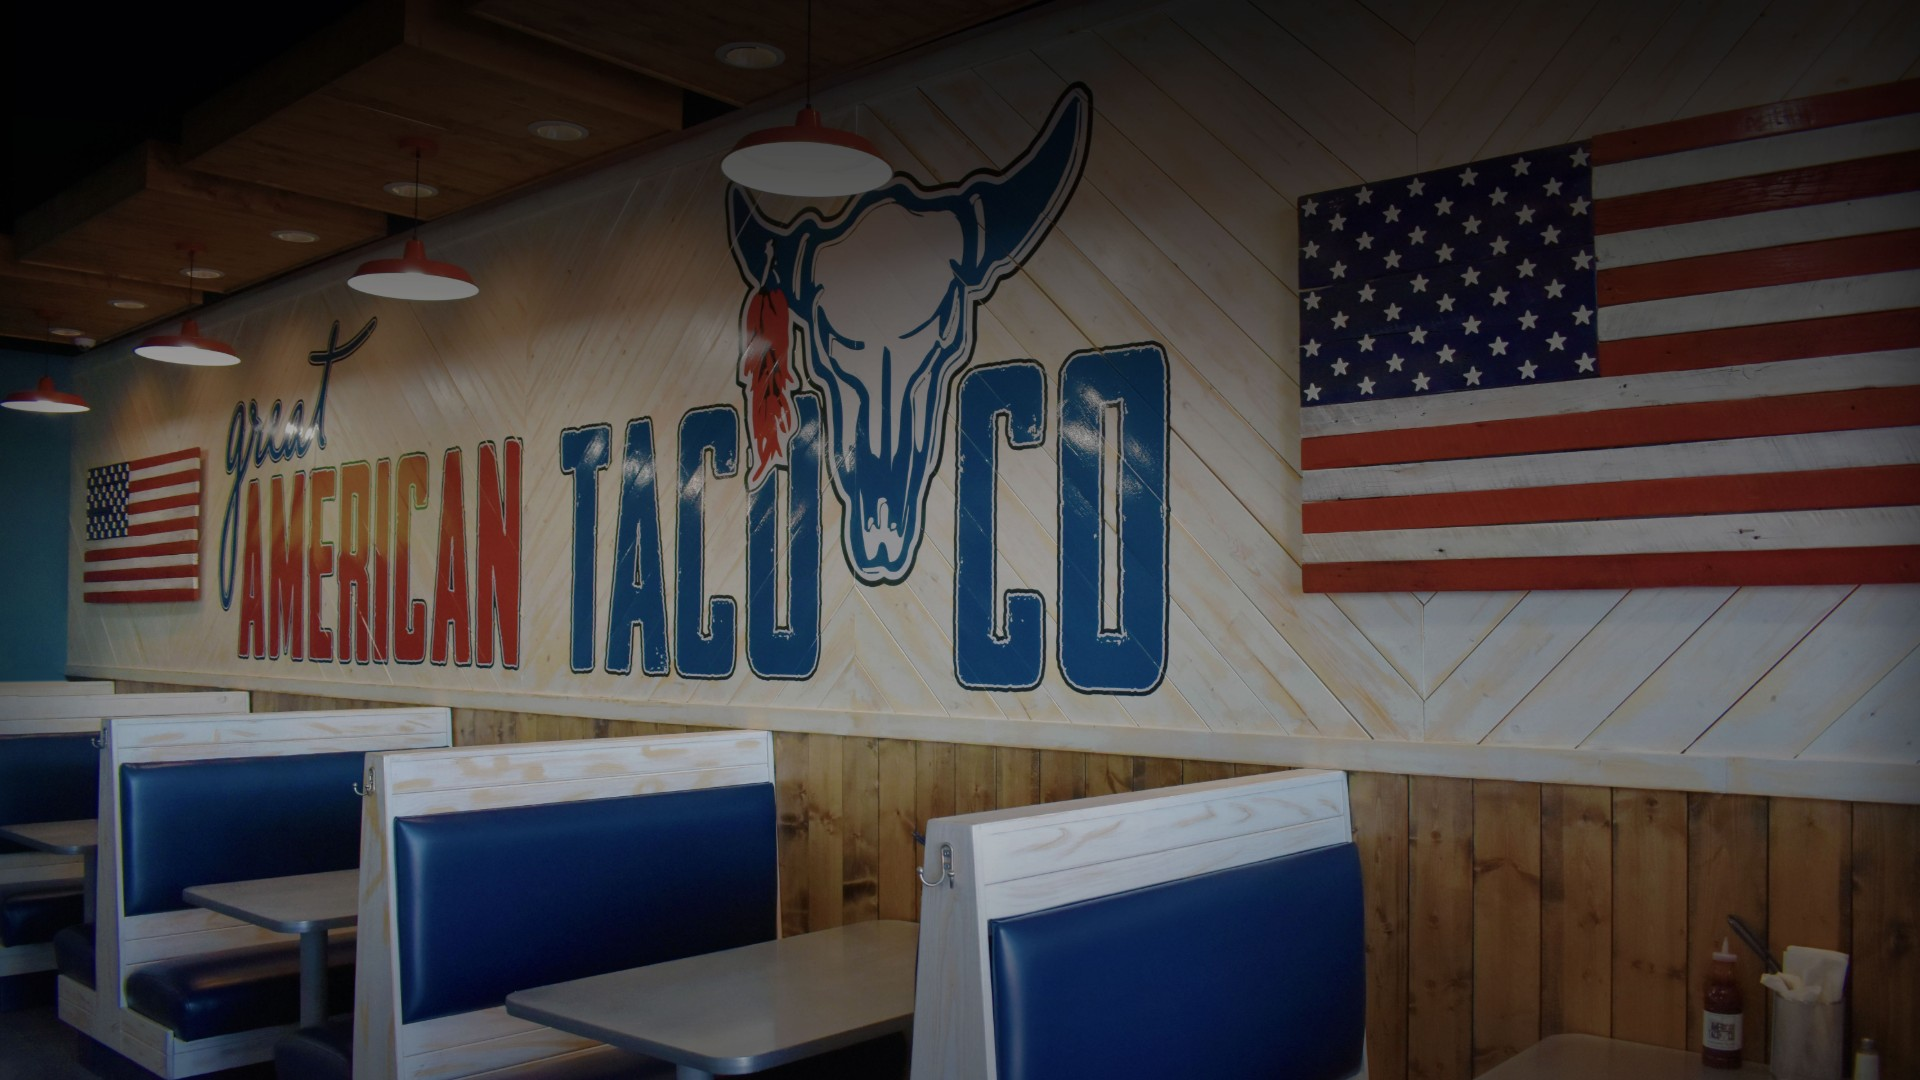 Great American Taco Company